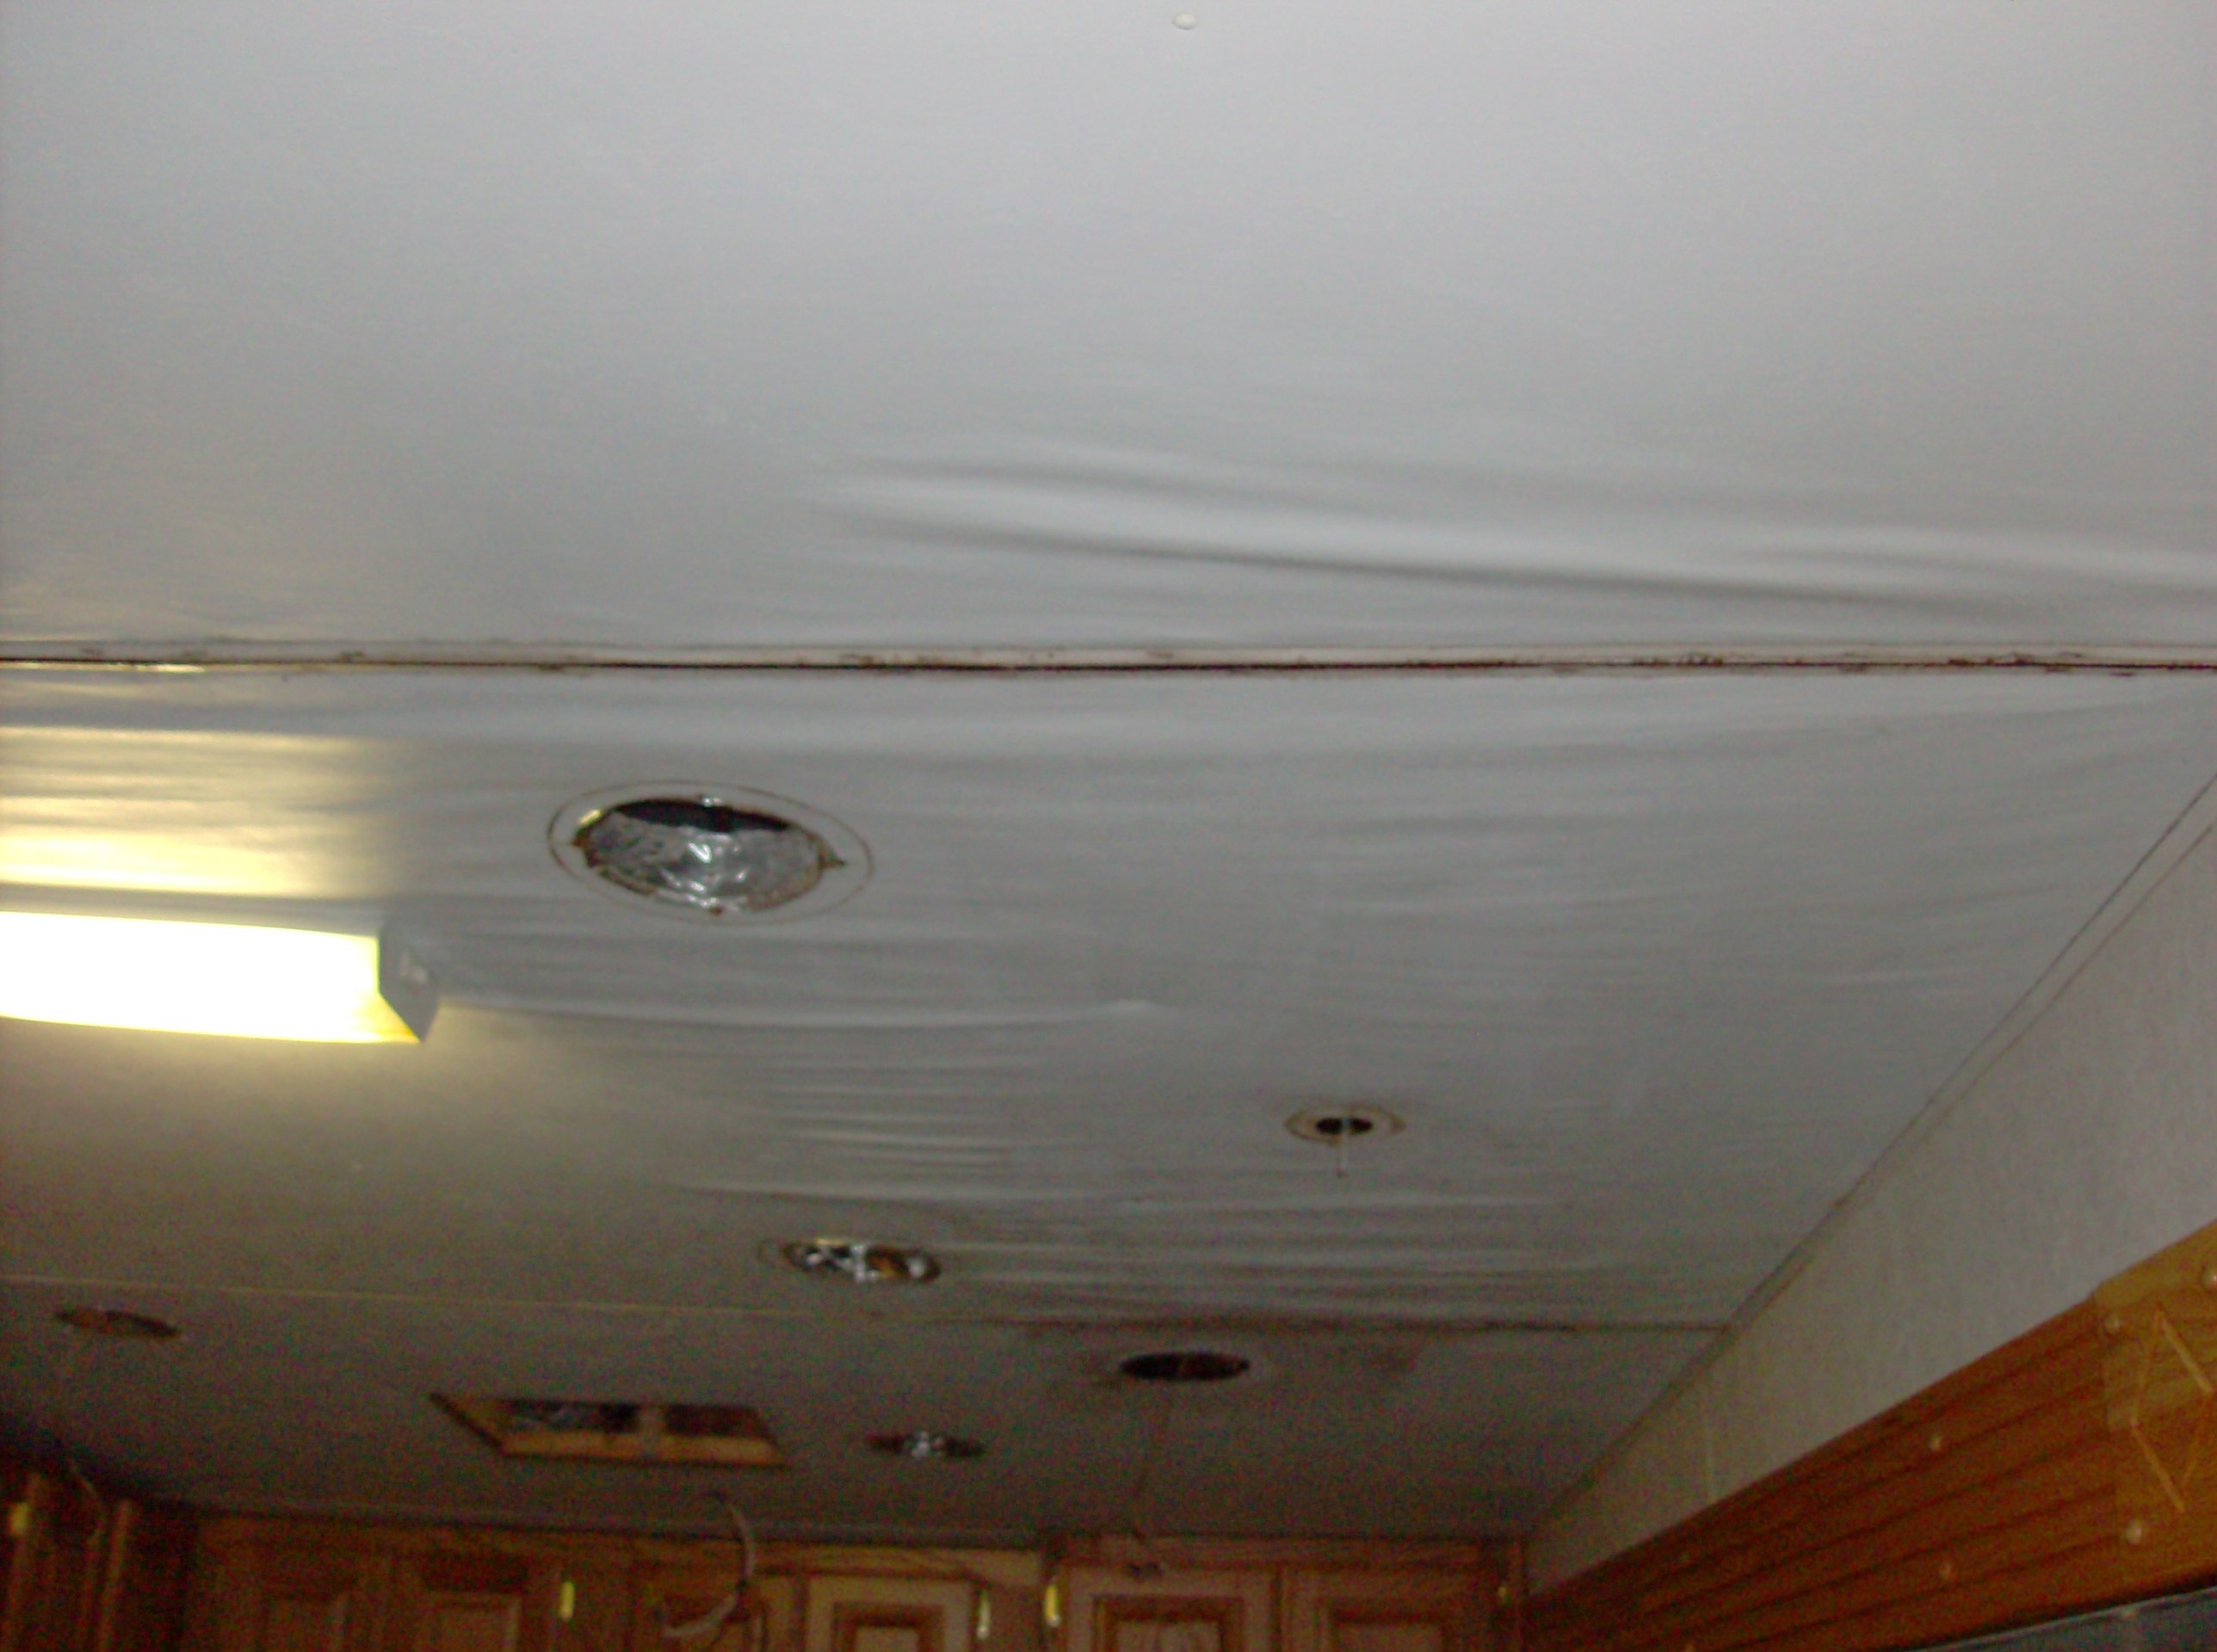 water damage to the ceiling & the roof